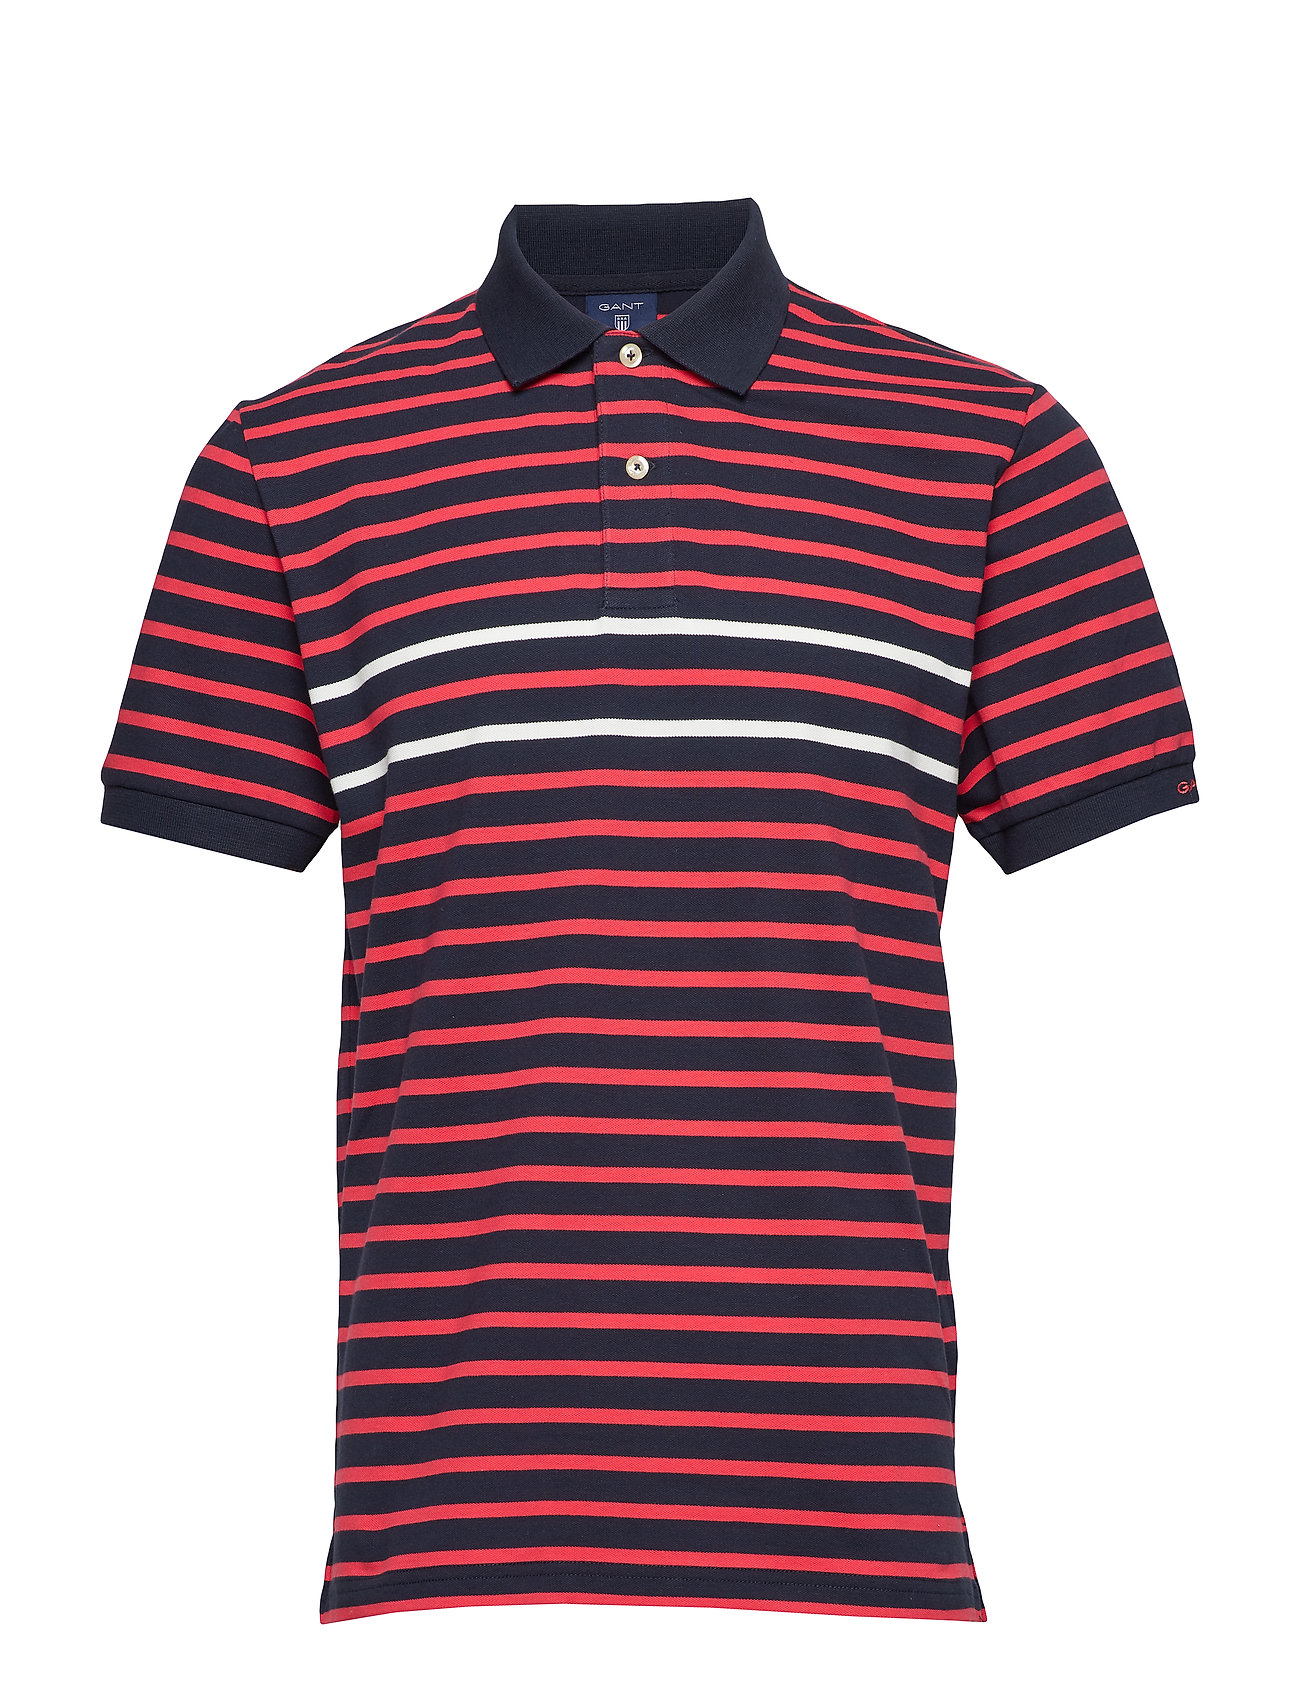 Gant O2. STRIPED SS RUGGER - WATERMELON RED